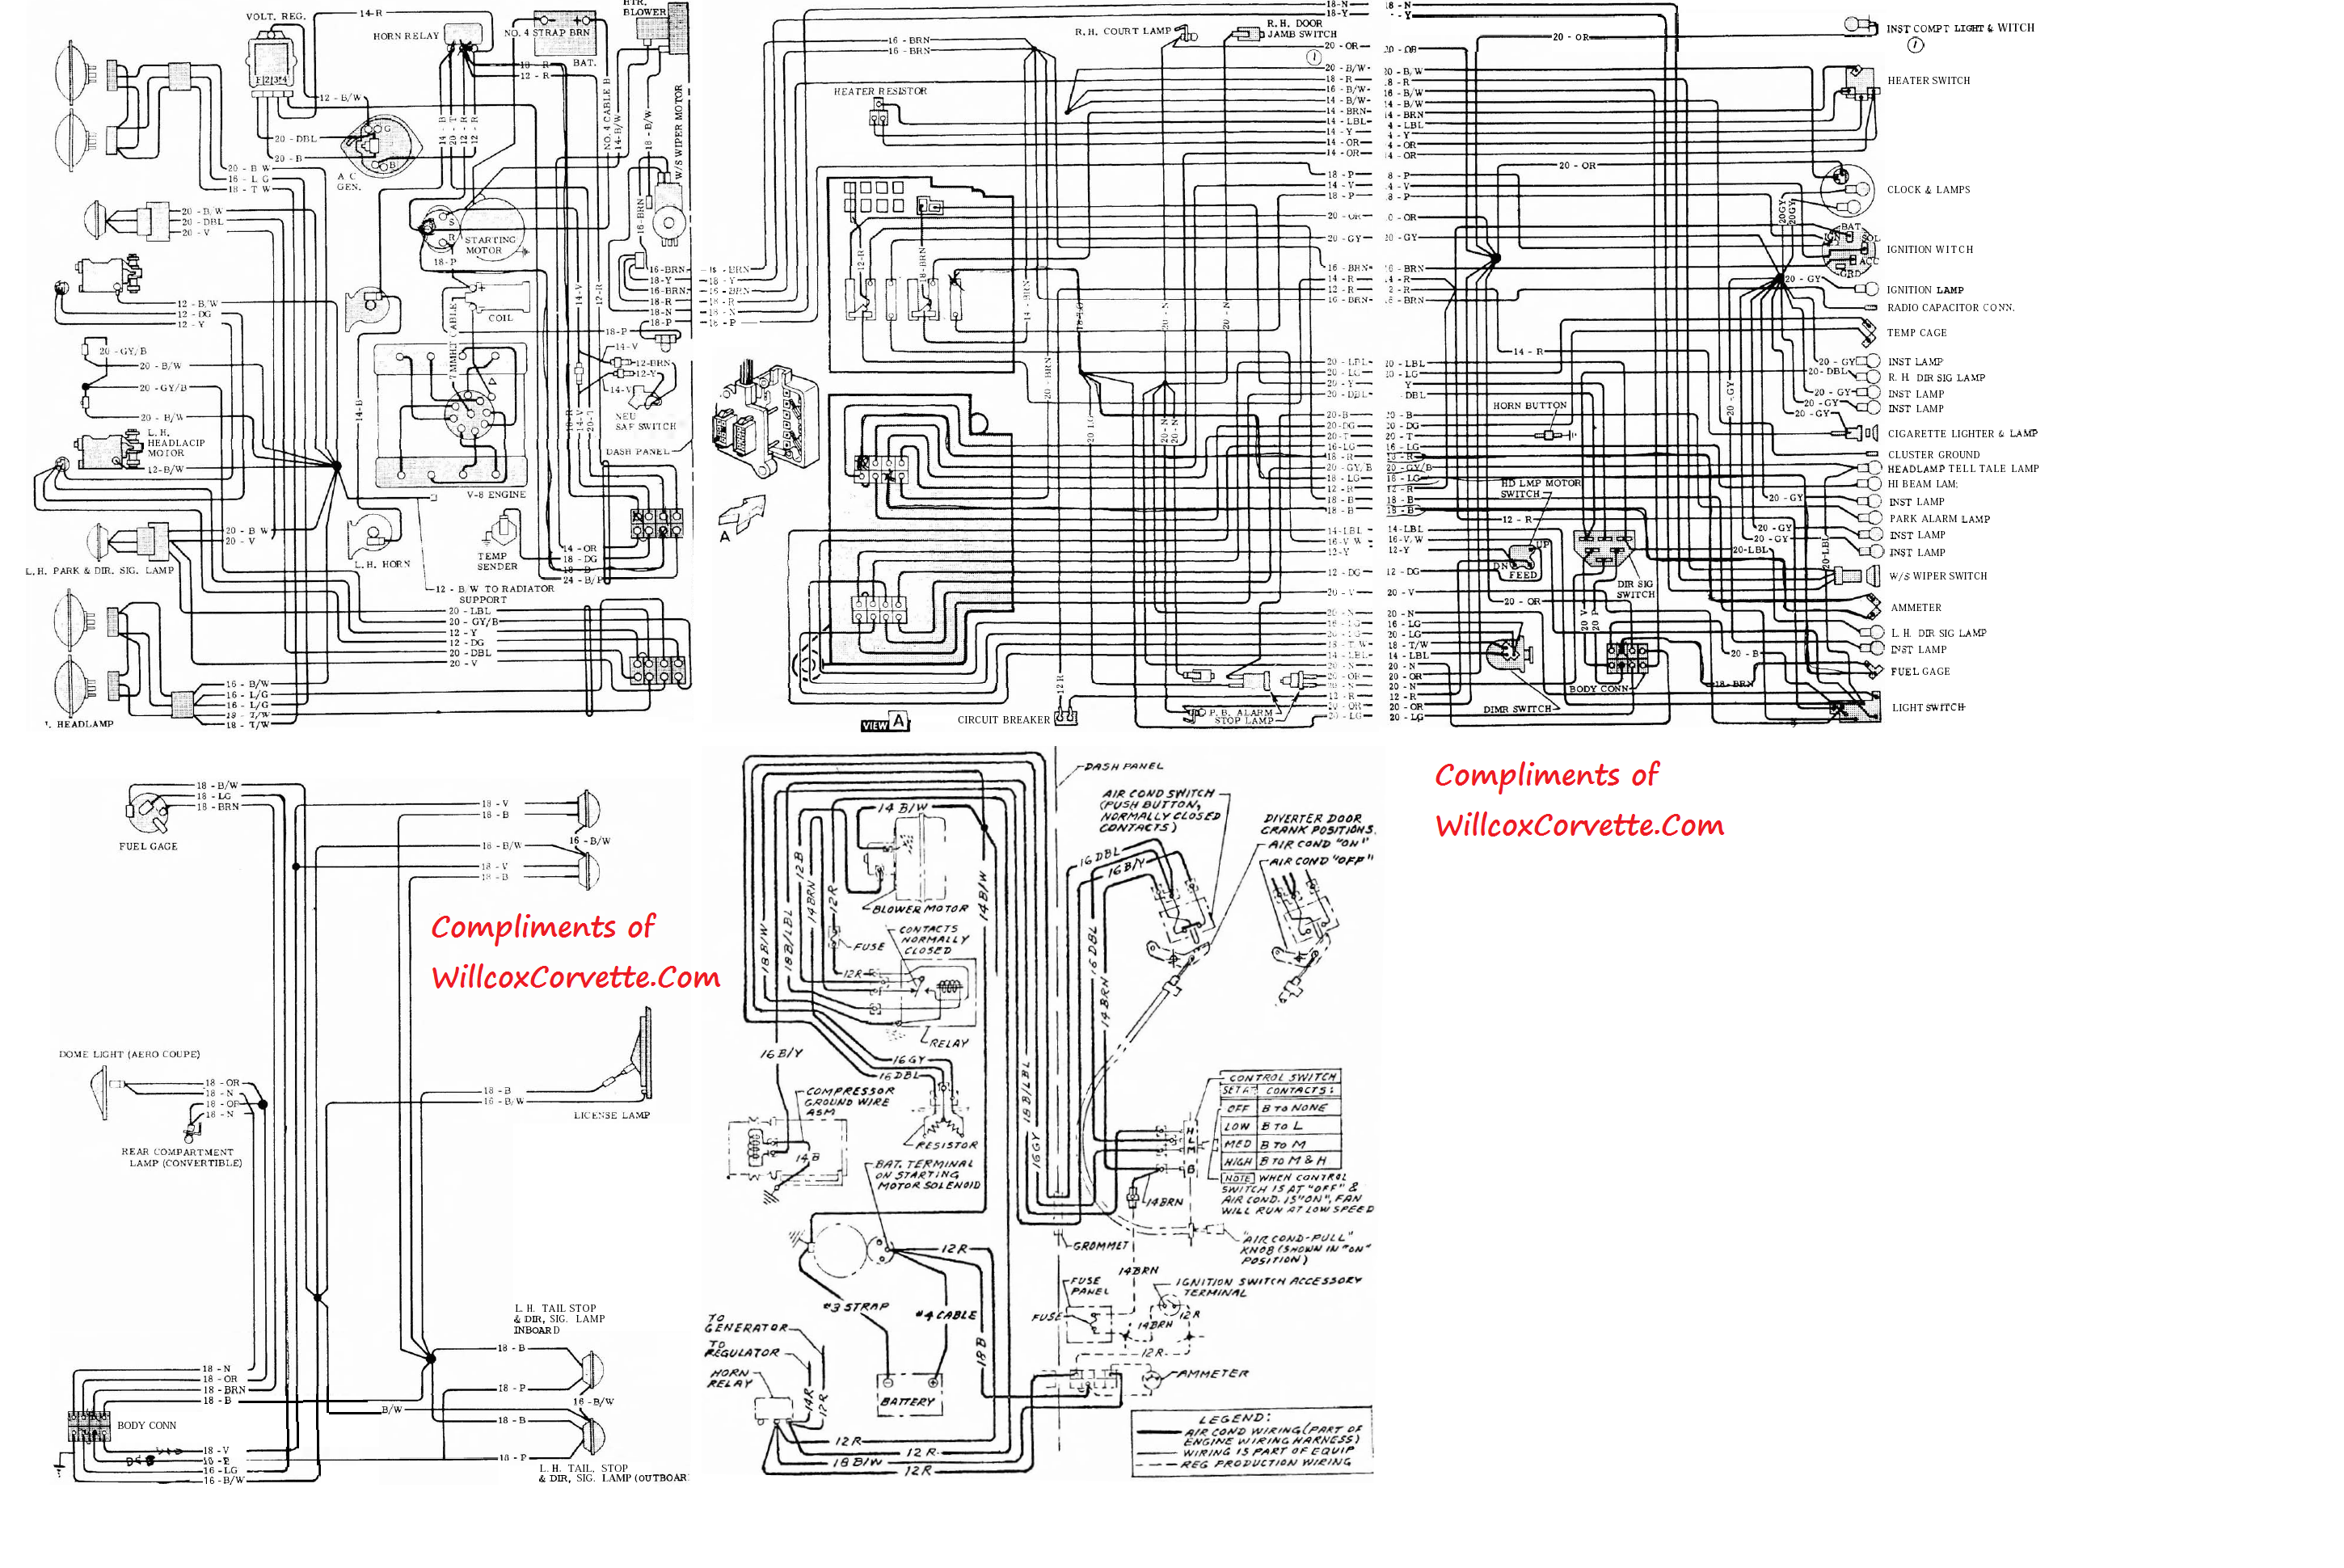 1963 Corvette Tracer Wiring Diagram Tracer Schematic 1963 corvette tracer wiring diagram tracer schematic willcox 2001 corvette wiring diagram at crackthecode.co